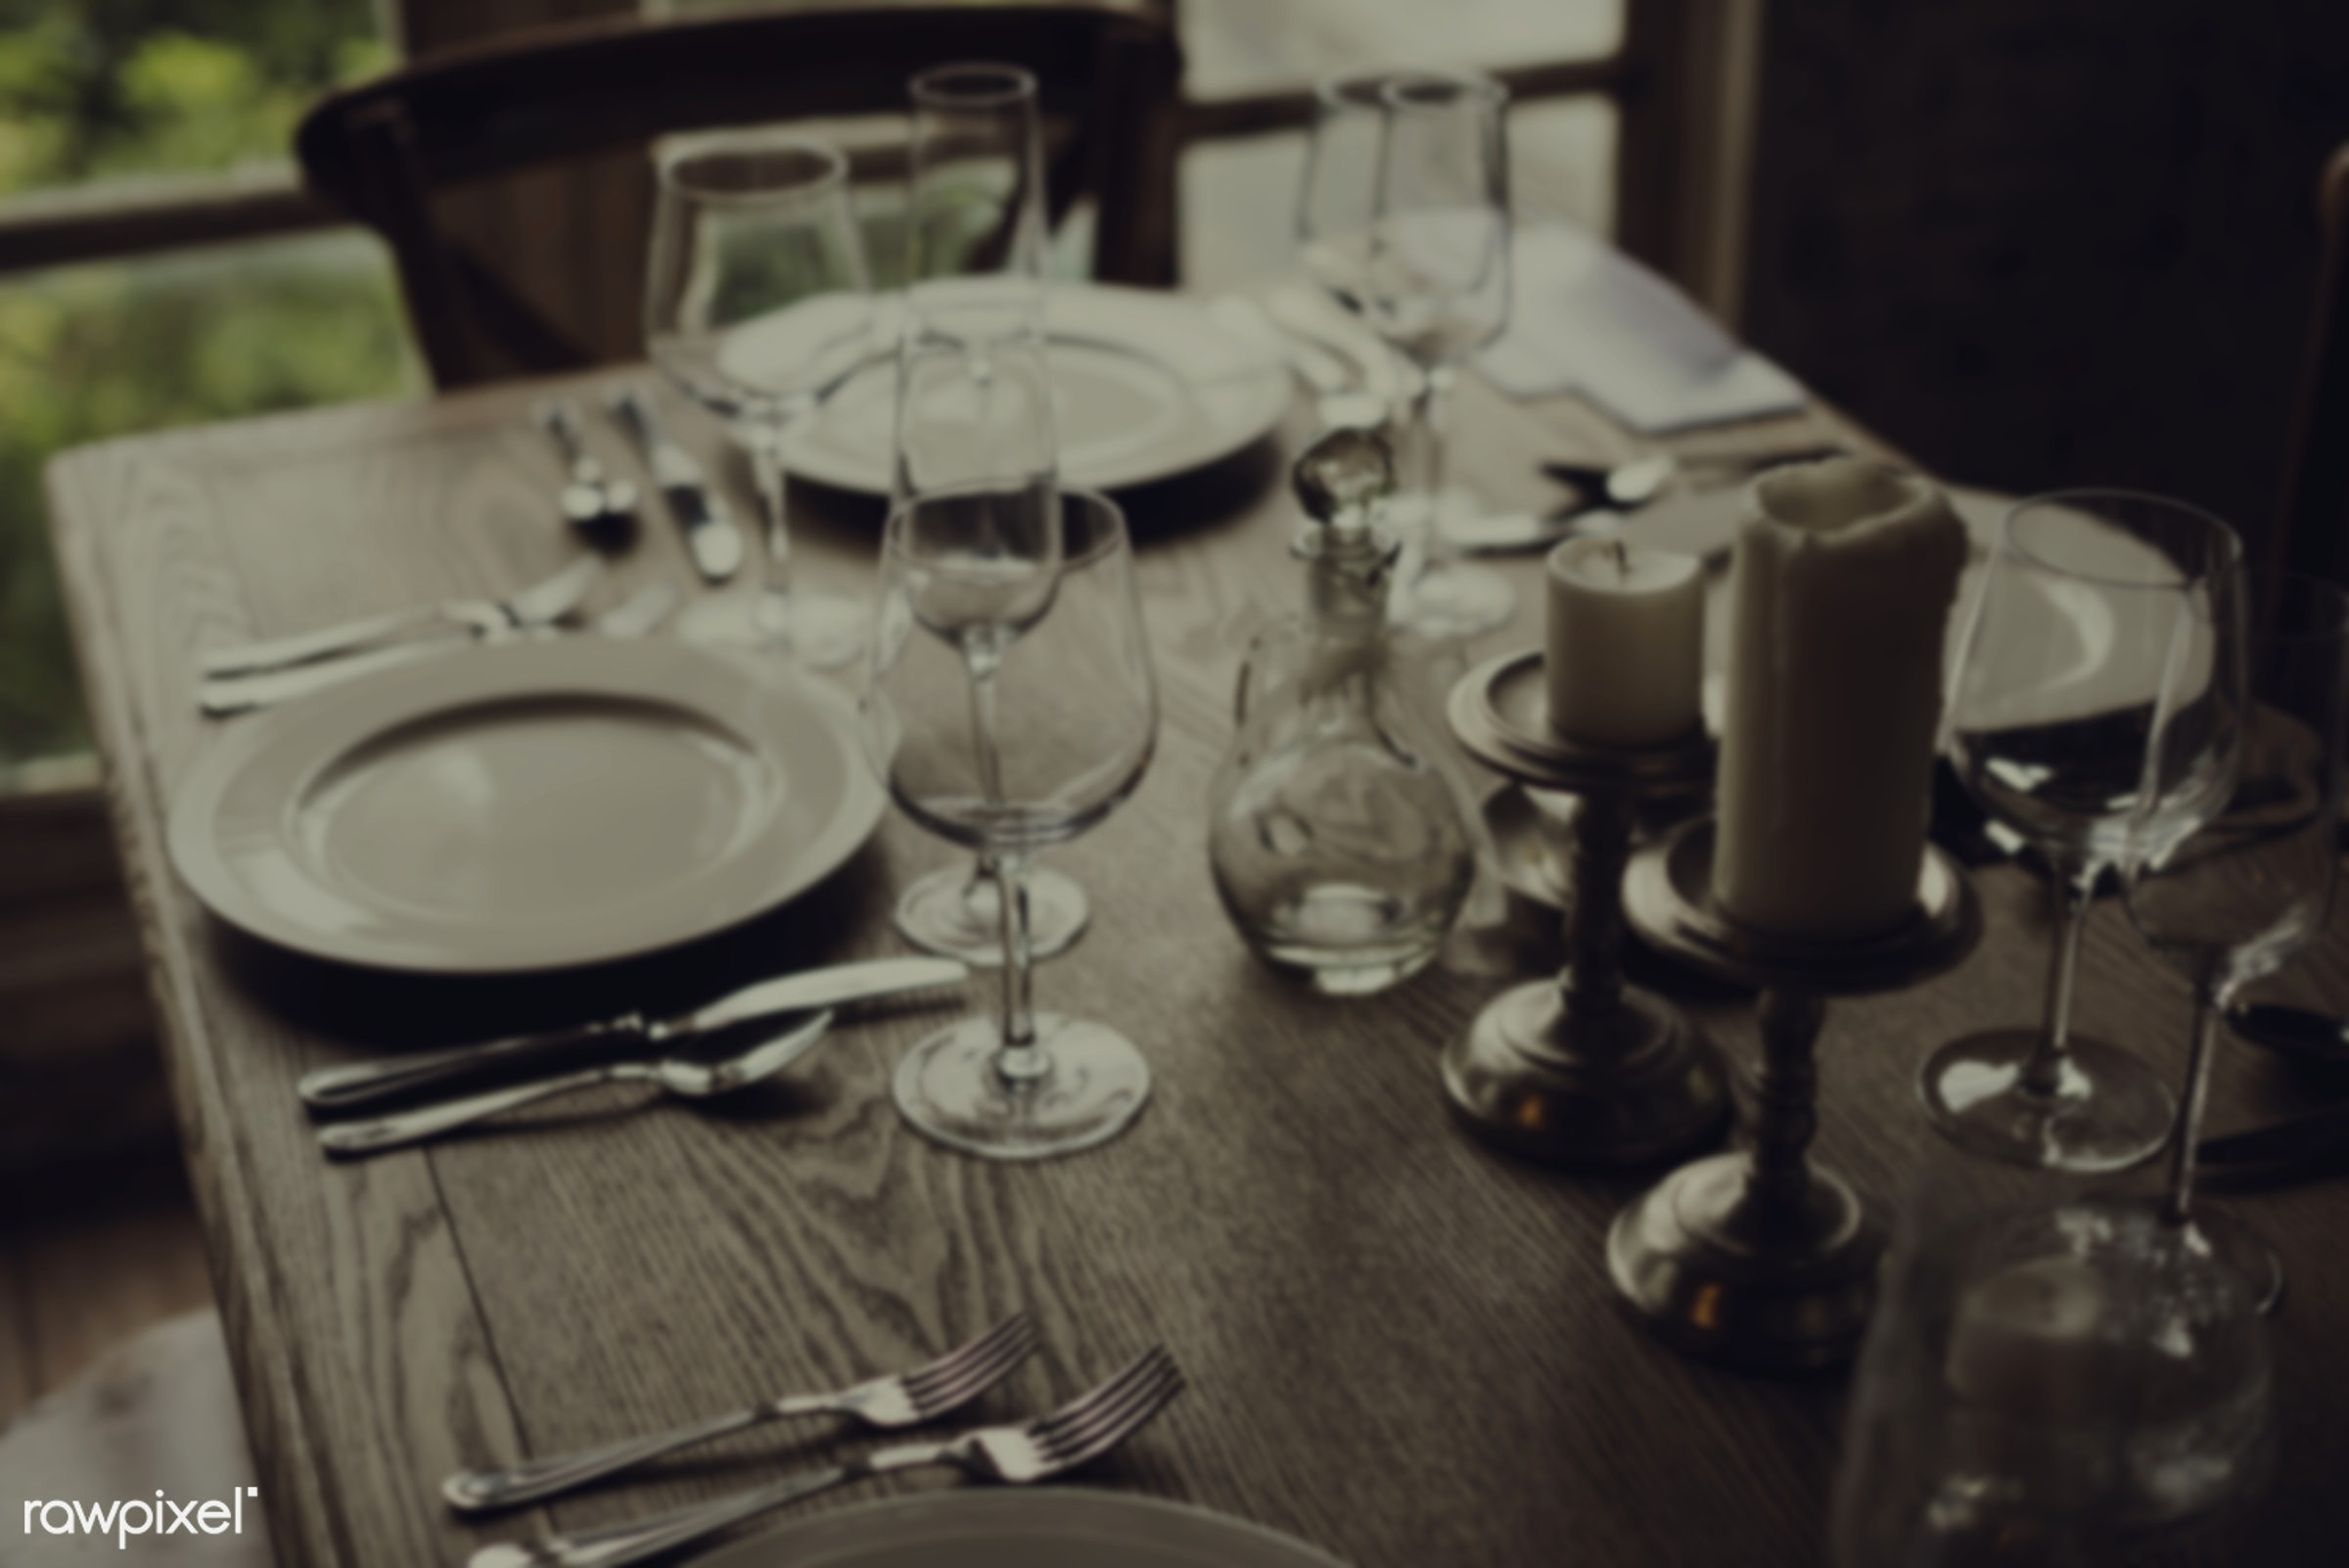 An empty table setting - nobody, glasses, occasion, party, setting, candle, knife, table setting, table, dinner, reception,...